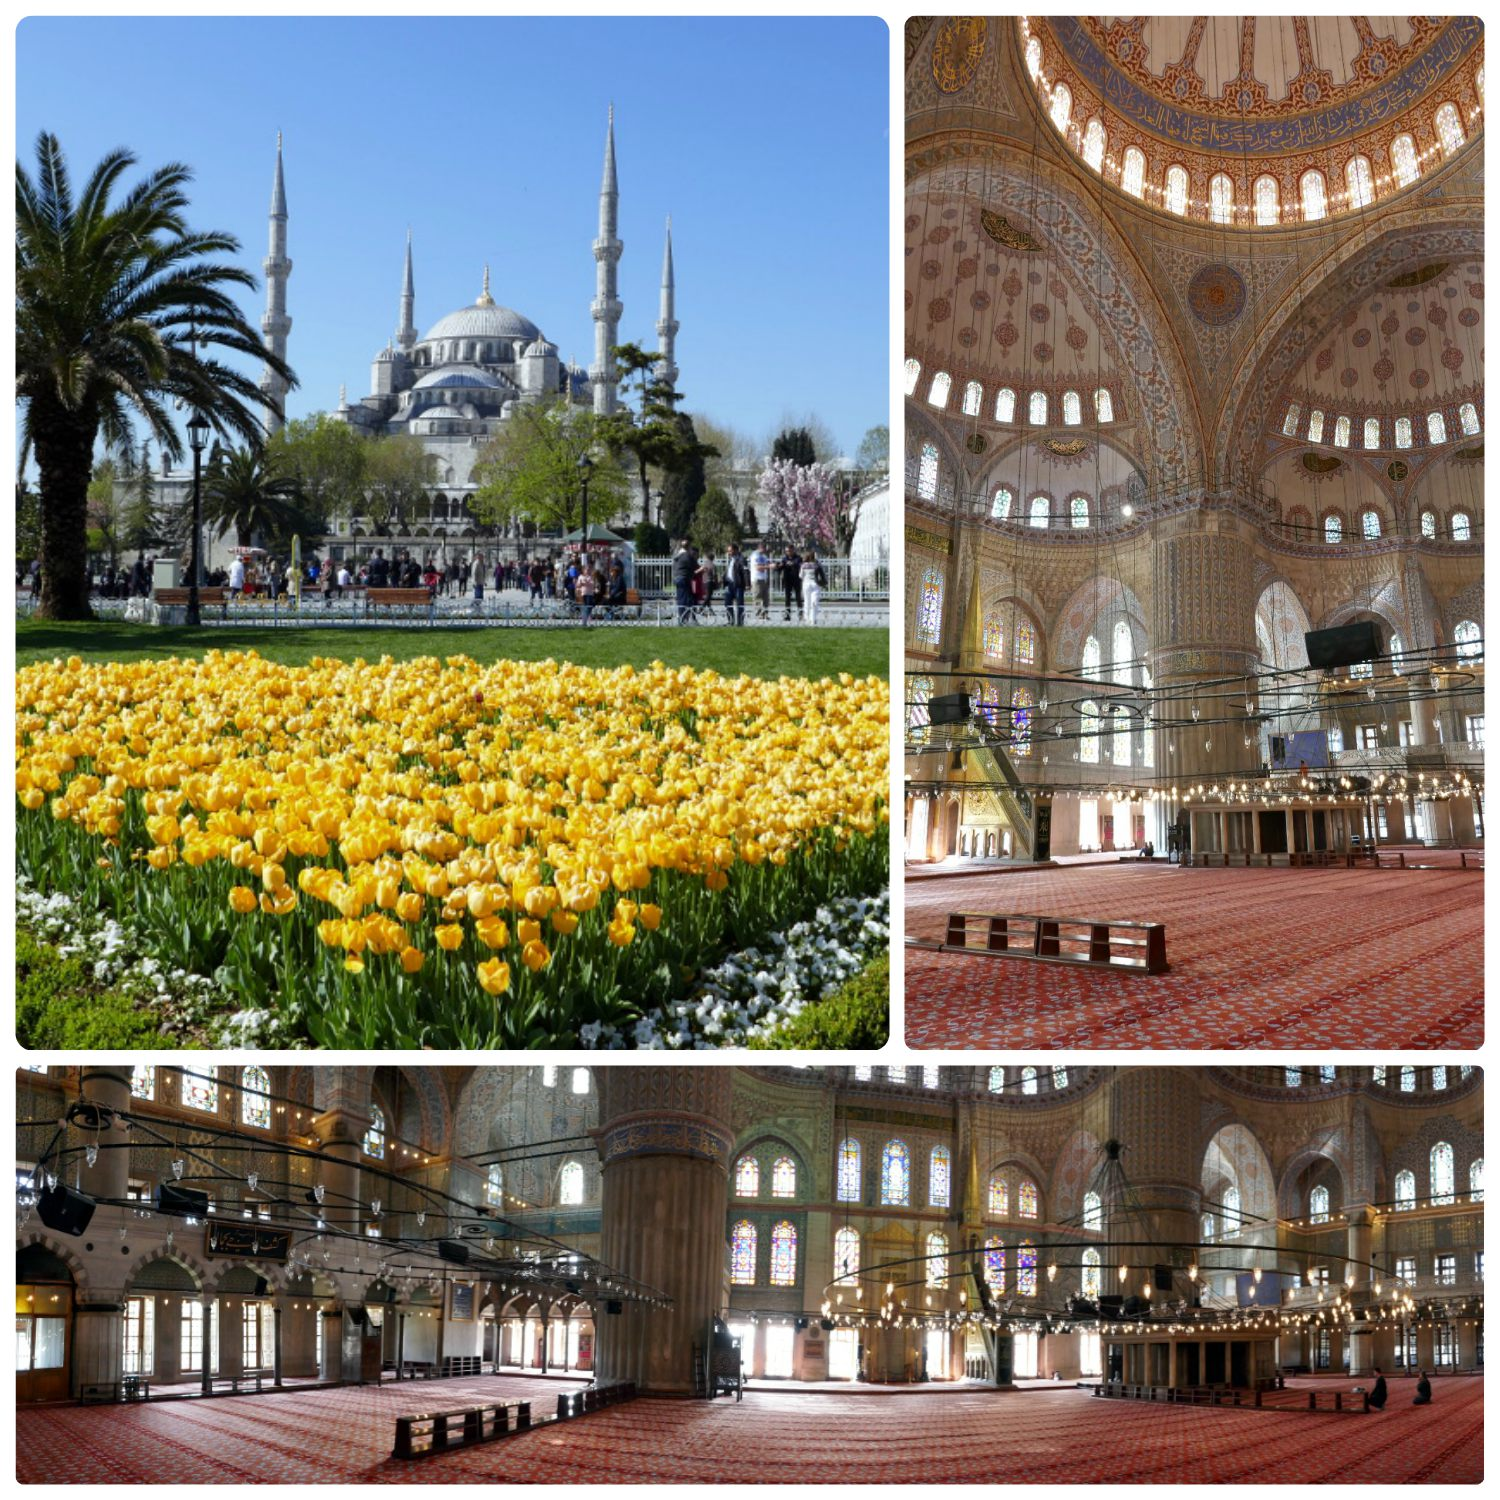 The exterior and interior of the Blue Mosque.